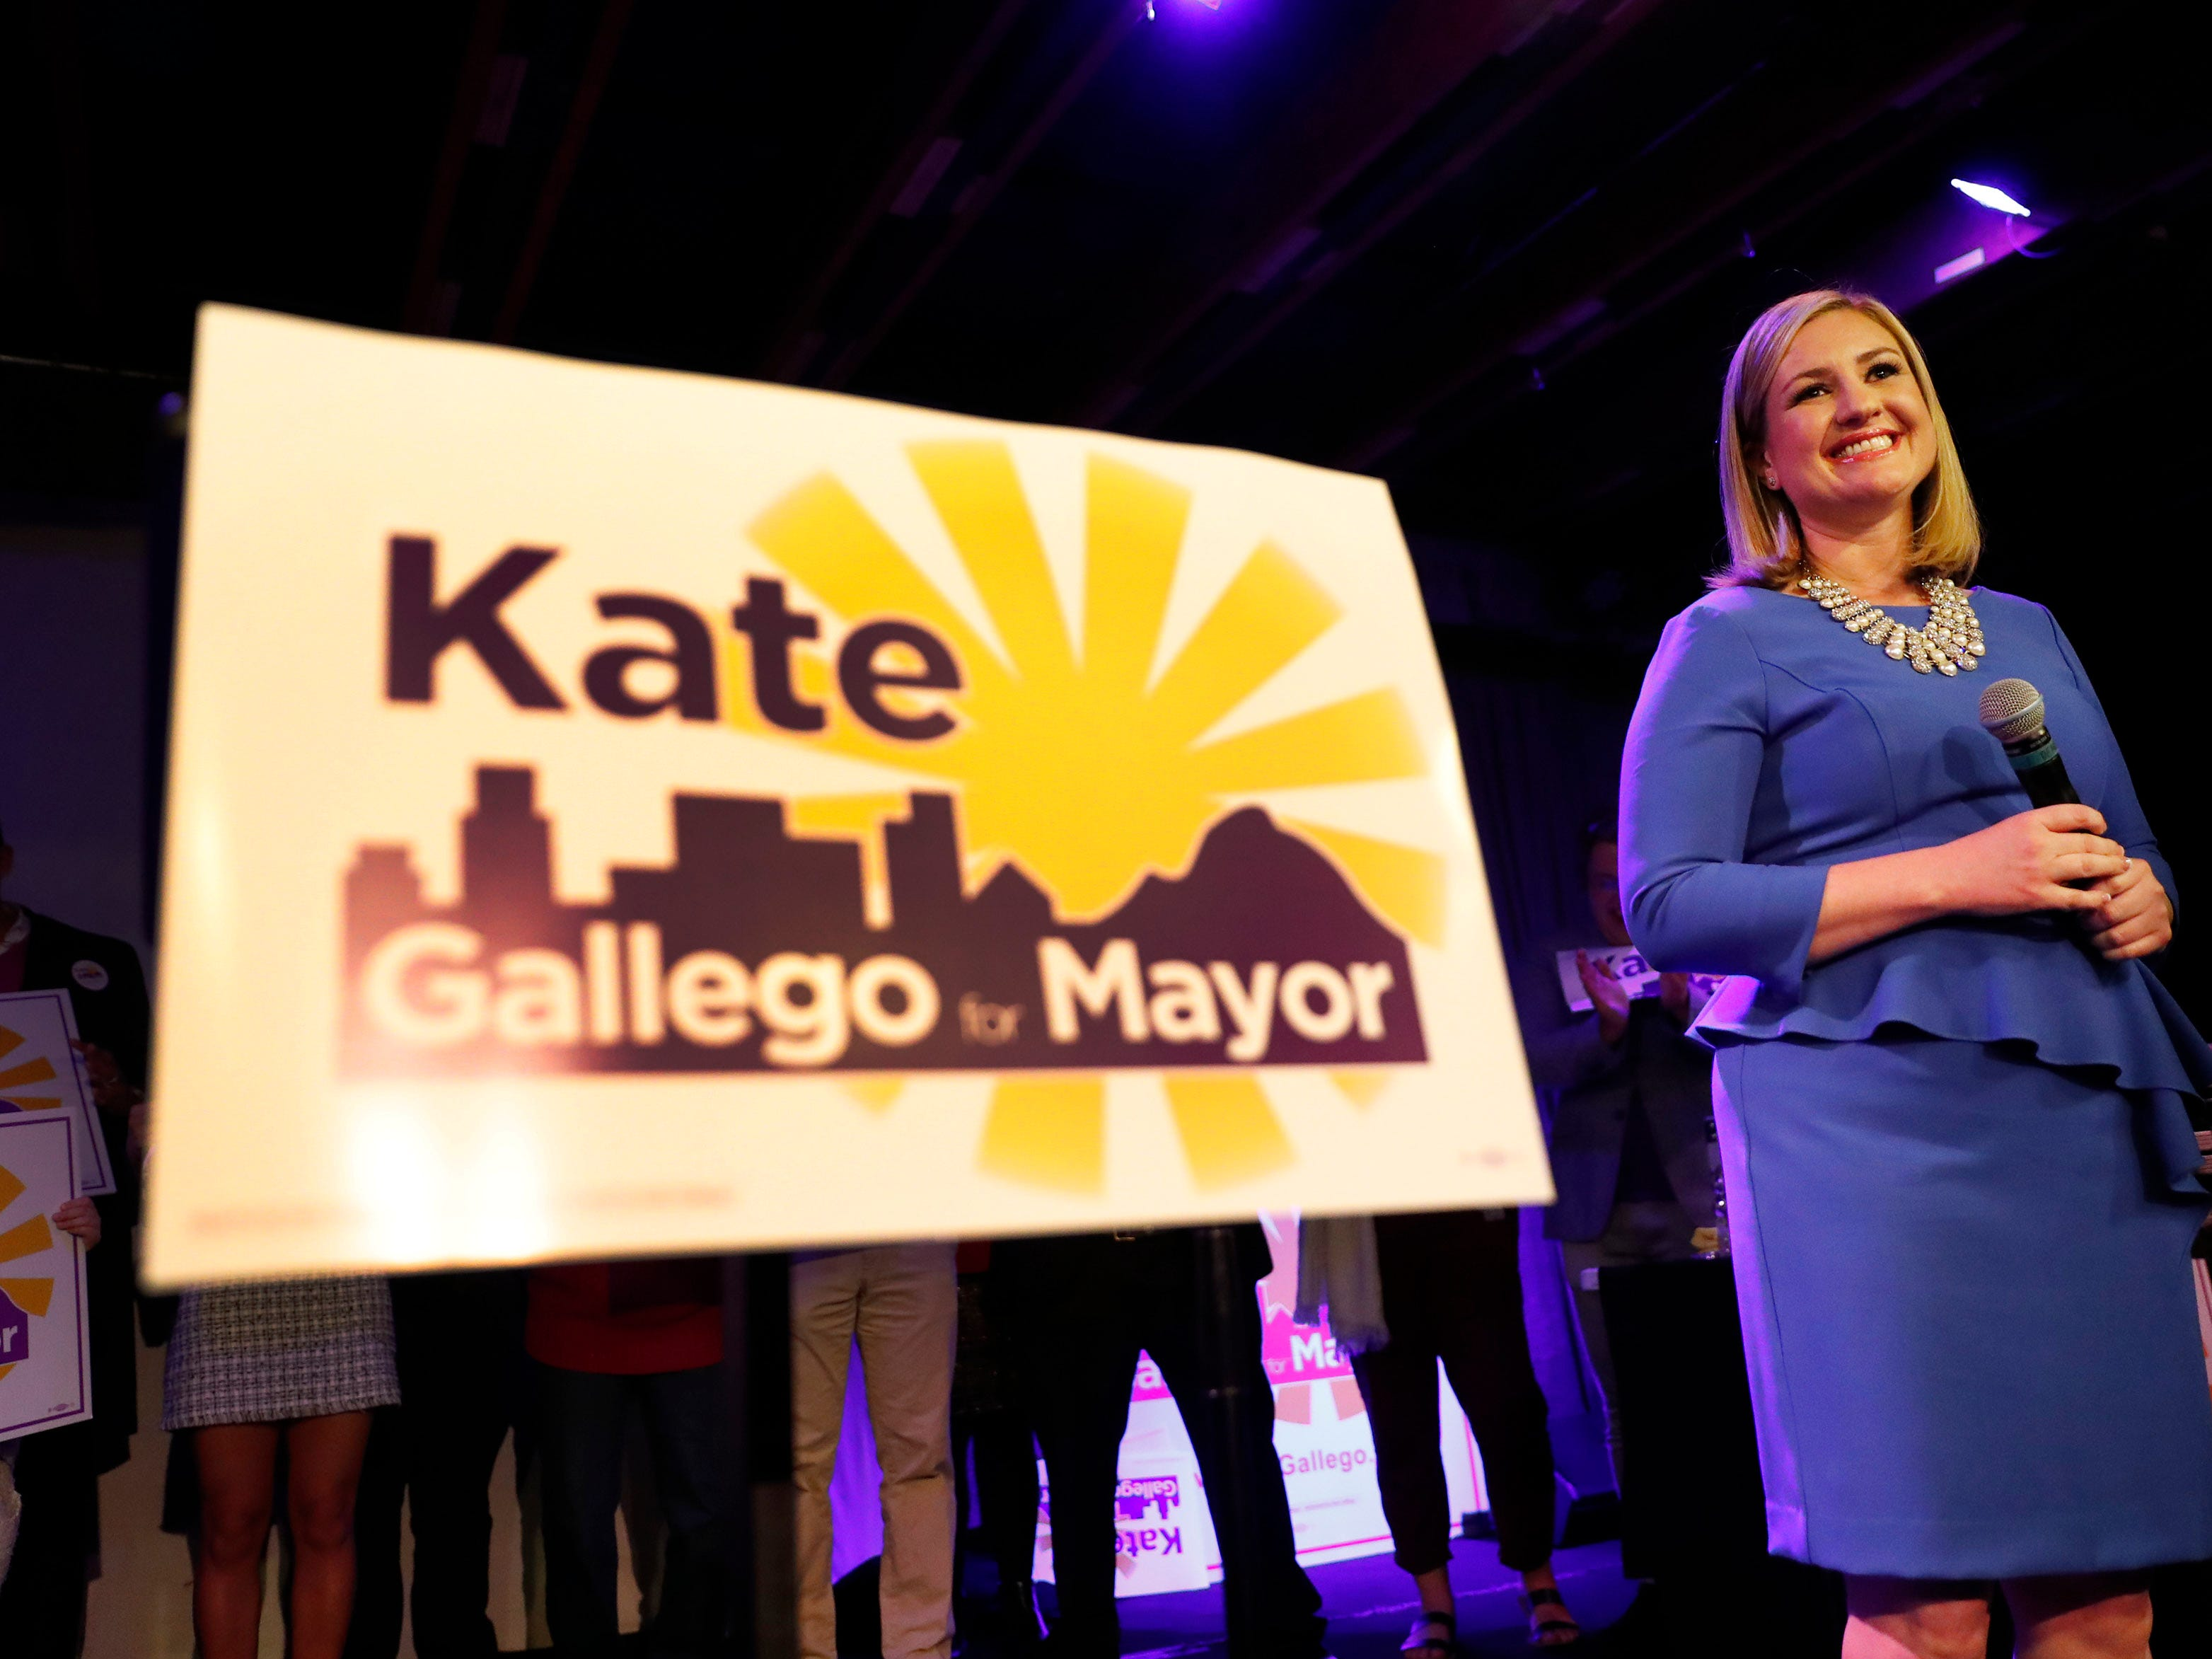 Democrat Kate Gallego talks to supporters after declaring victory in the Phoenix mayoral race at an election-night party at Crescent Ballroom in Phoenix on March 12, 2019.